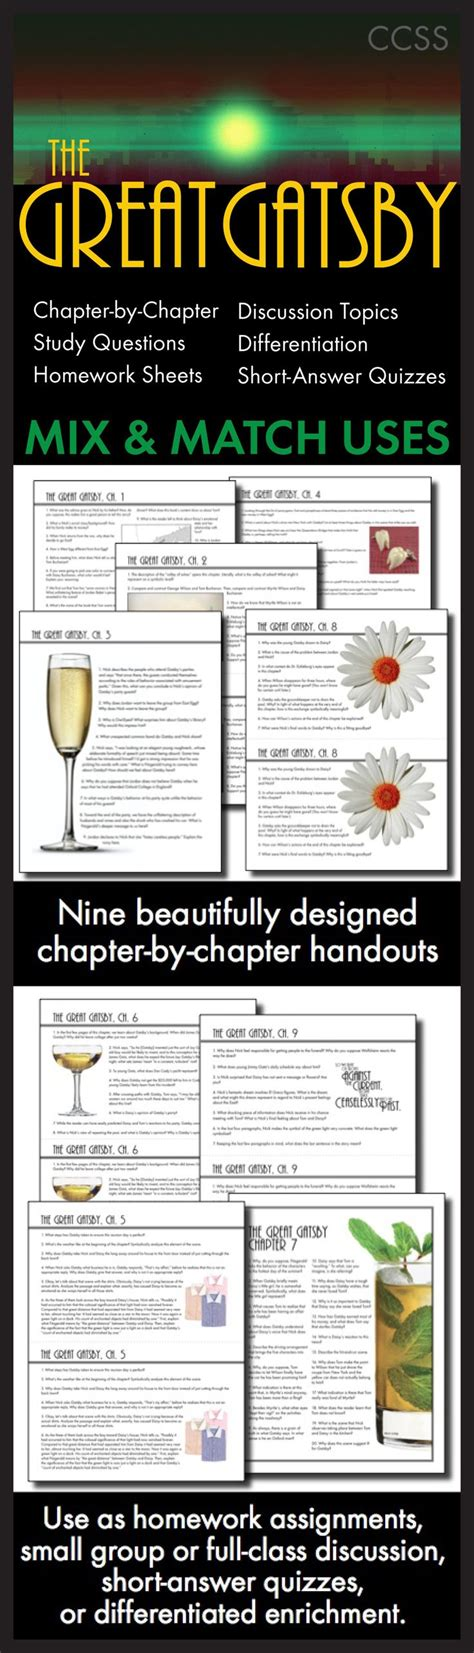 themes of great gatsby chapter 4 100 declaration of 32 best teaching the great gatsby images on pinterest